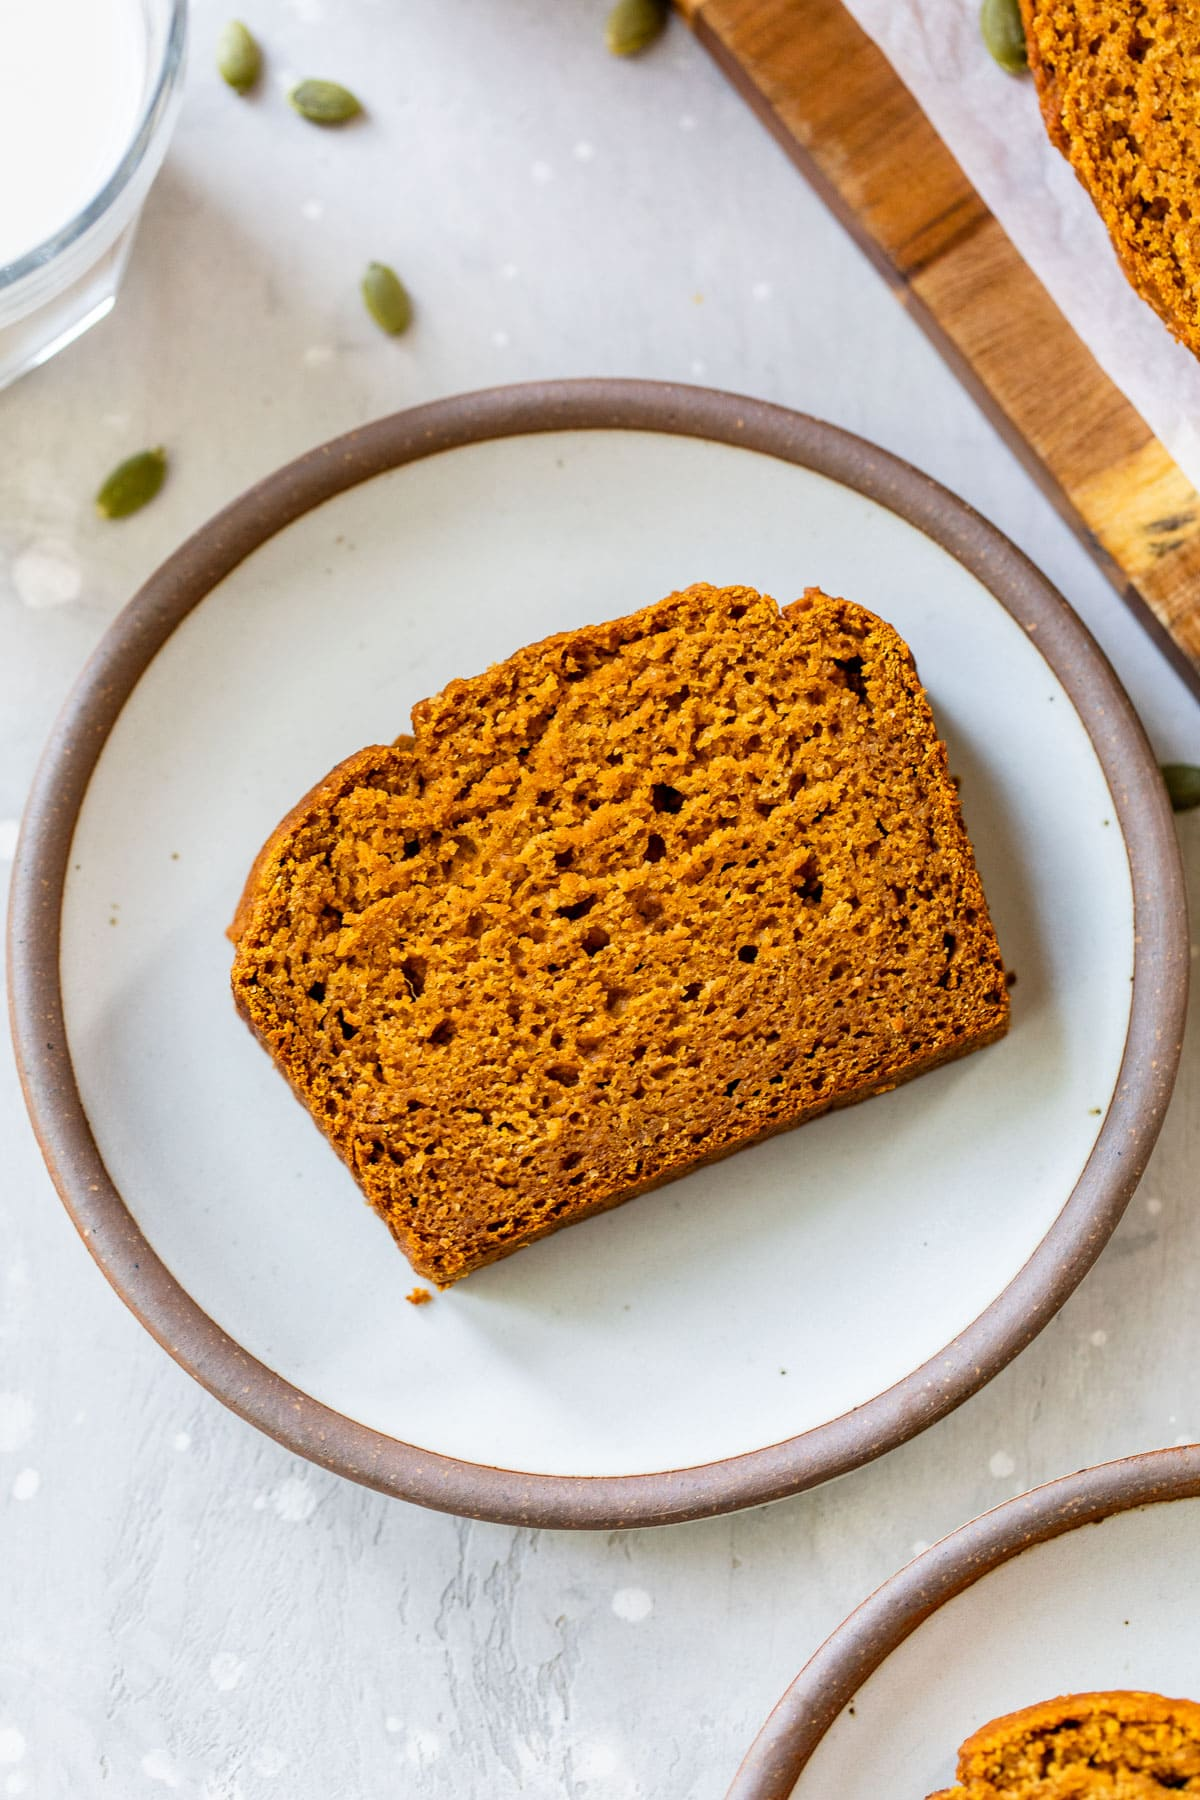 A loaf of orange bread with millet